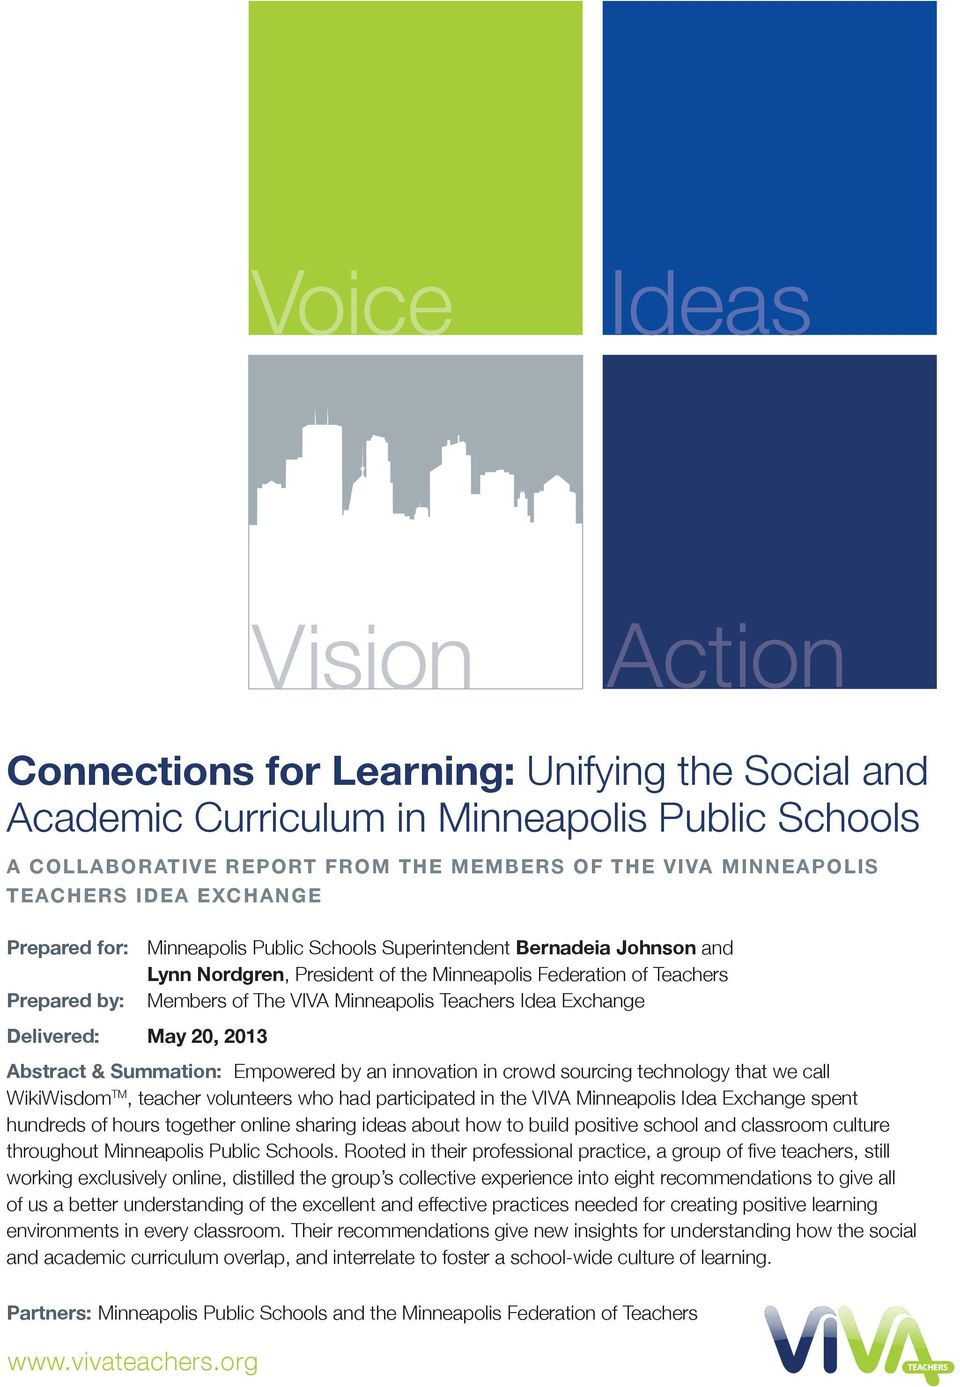 Minneapolis Teachers Idea Exchange Delivered: May 20, 2013 Abstract & Summation: Empowered by an innovation in crowd sourcing technology that we call WikiWisdom TM, teacher volunteers who had